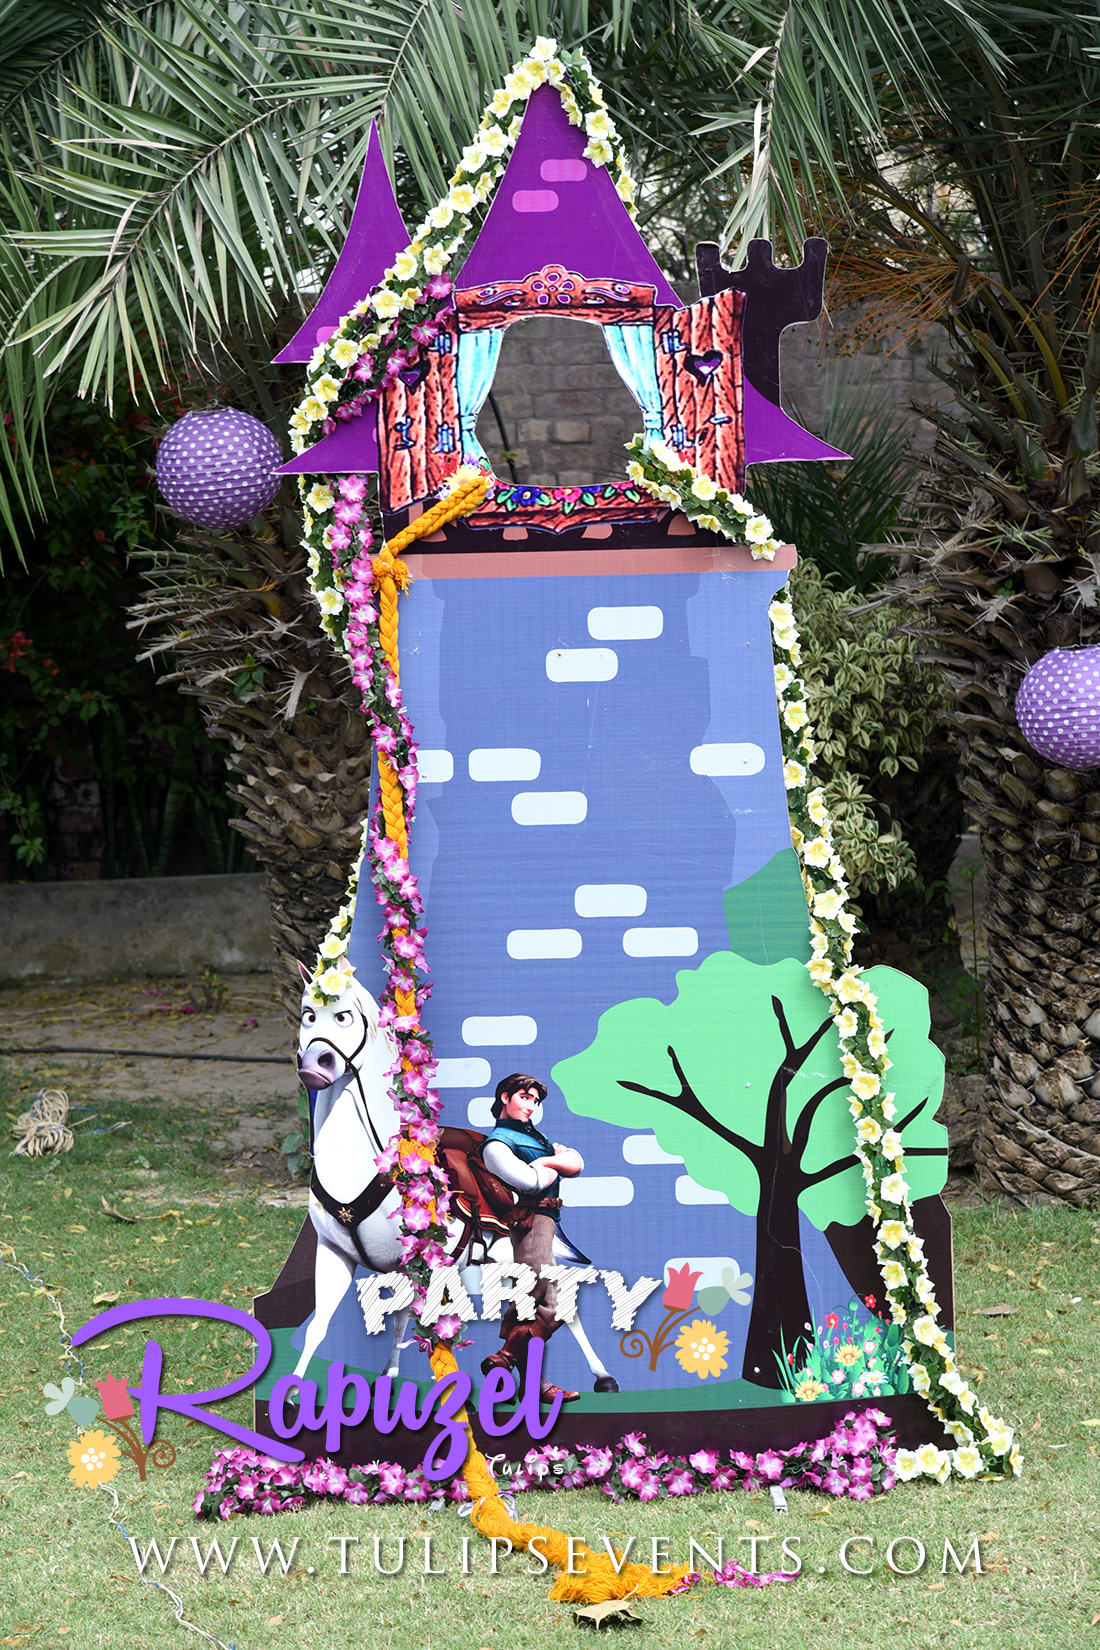 rapunzel-tangled-outdoor-party-decor-ideas-in-pakistan